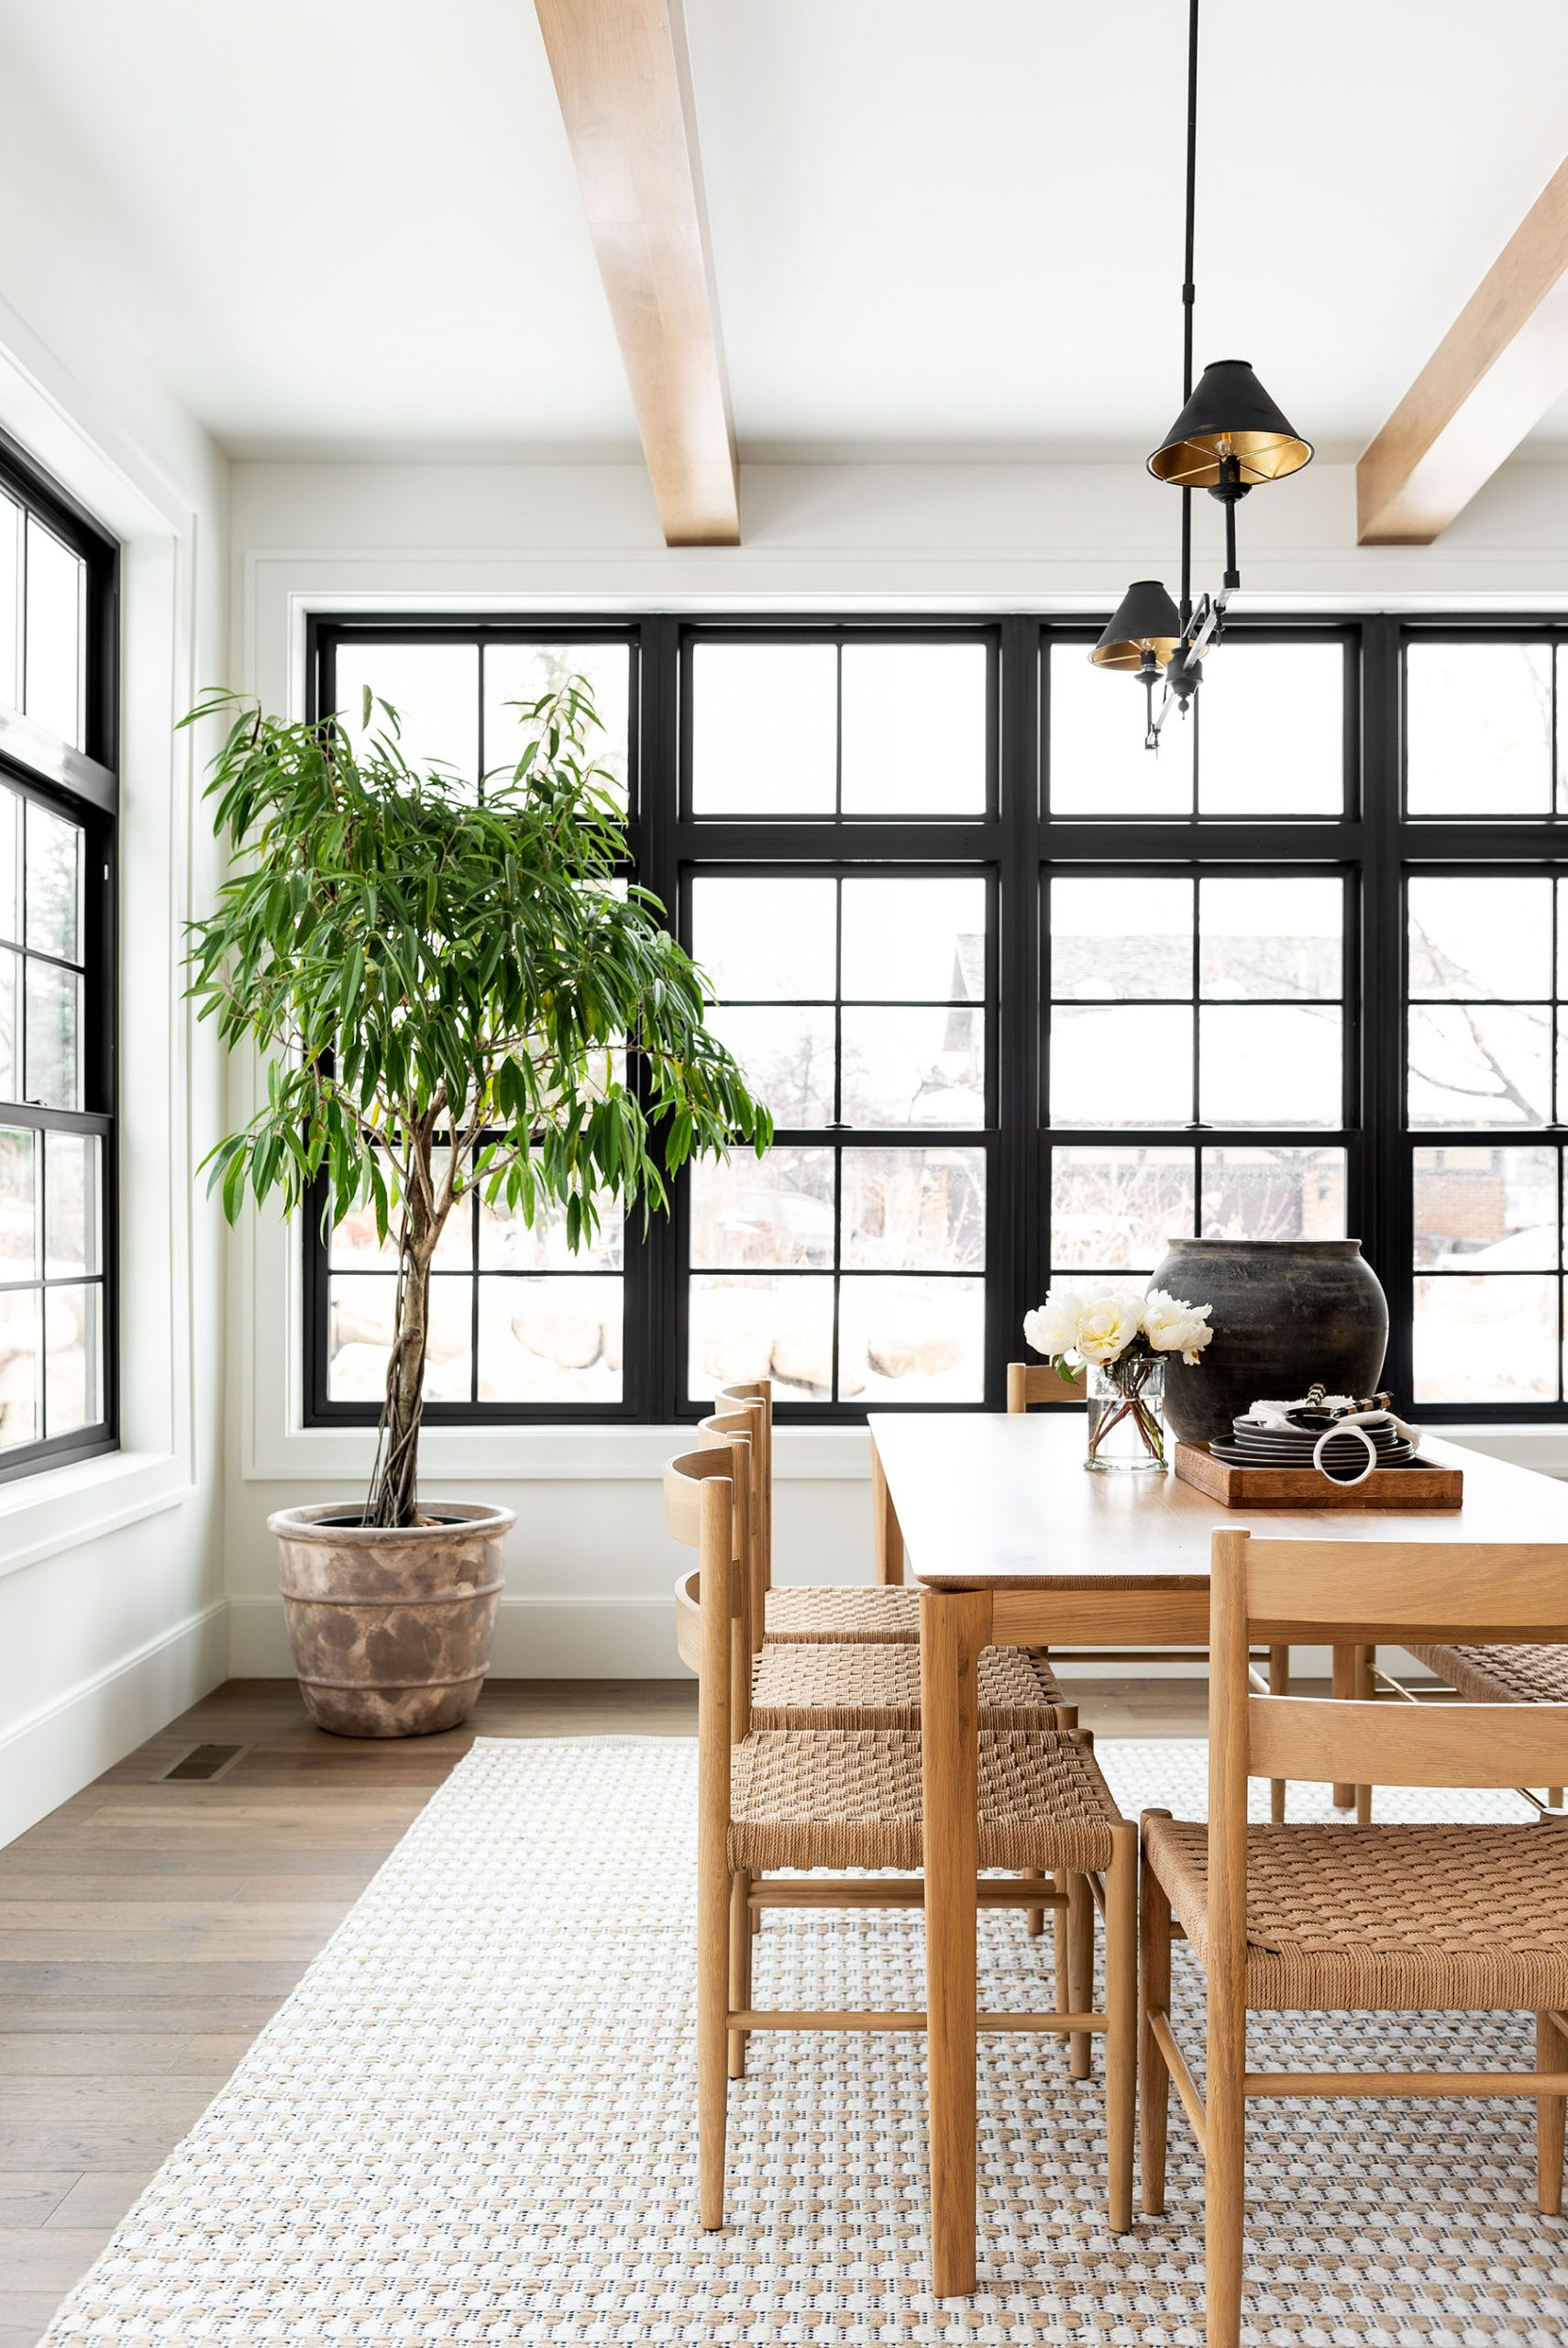 Top Tips for Home Lighting